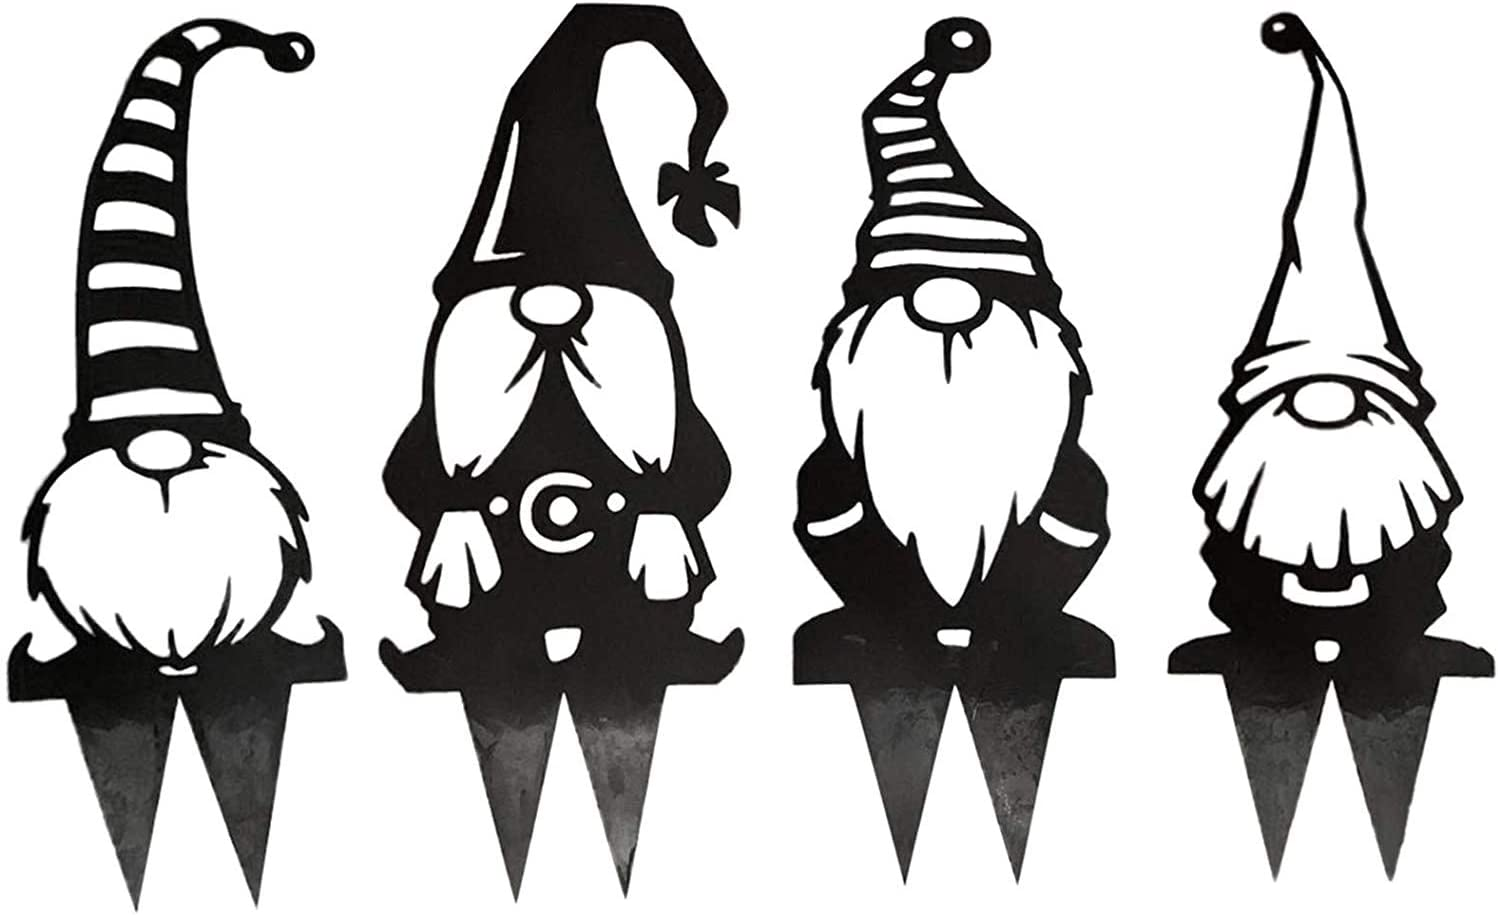 4PCS Steel Gnomes Decoration, Cute Hollowed Out Steel Garden Gnomes Statue, Art Dwarf Decor Branch Ornaments for Home Garden Yard Patio Outdoor Decoration